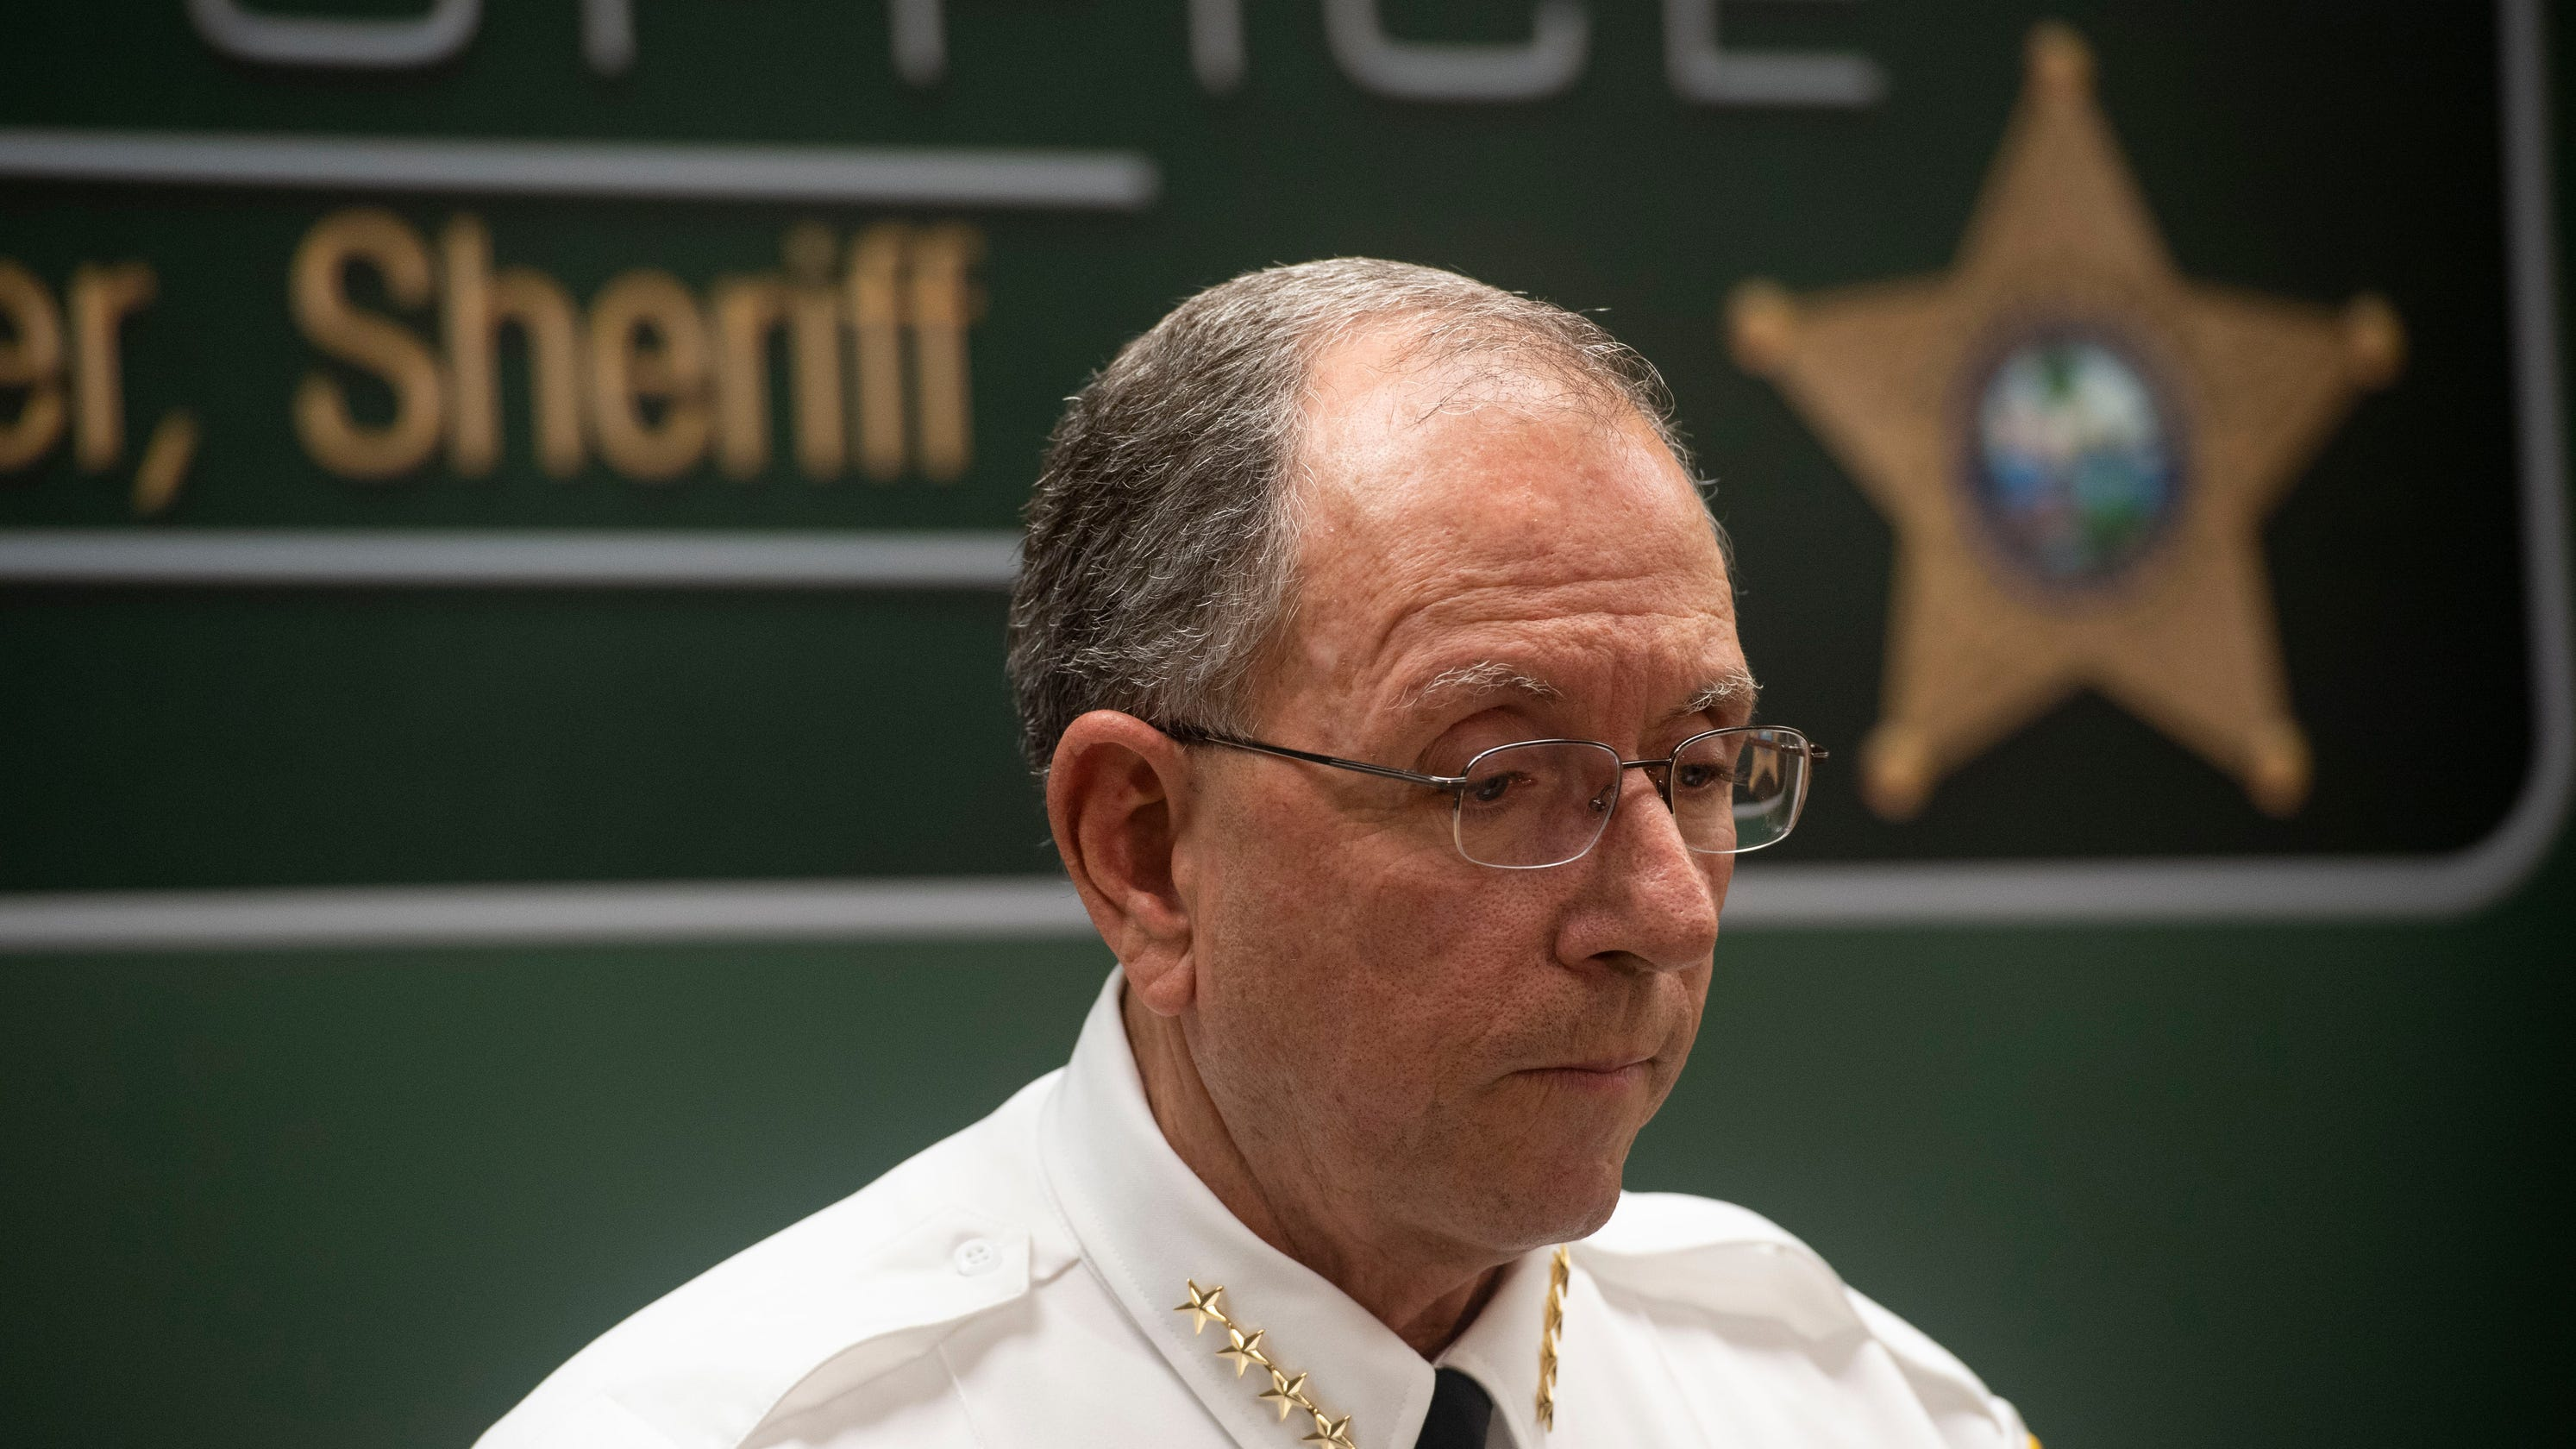 Martin County sheriff shares details of firing Deputy Steven O'Leary